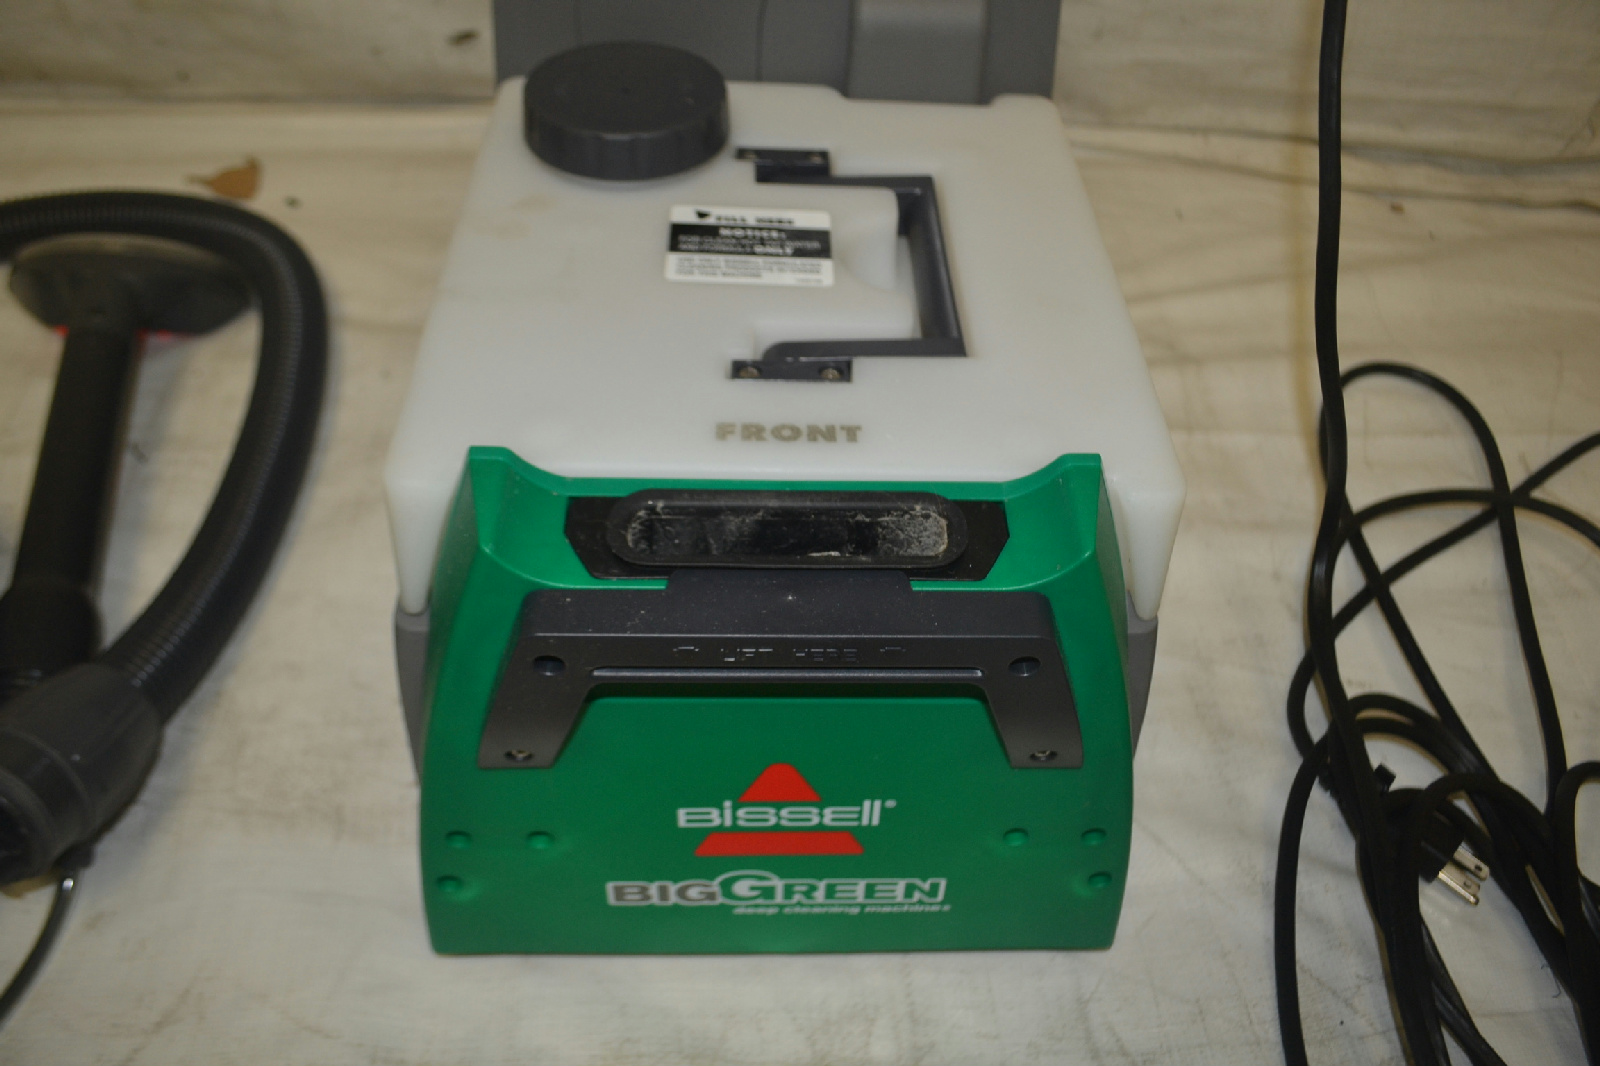 bissell big green cleaning machine professional